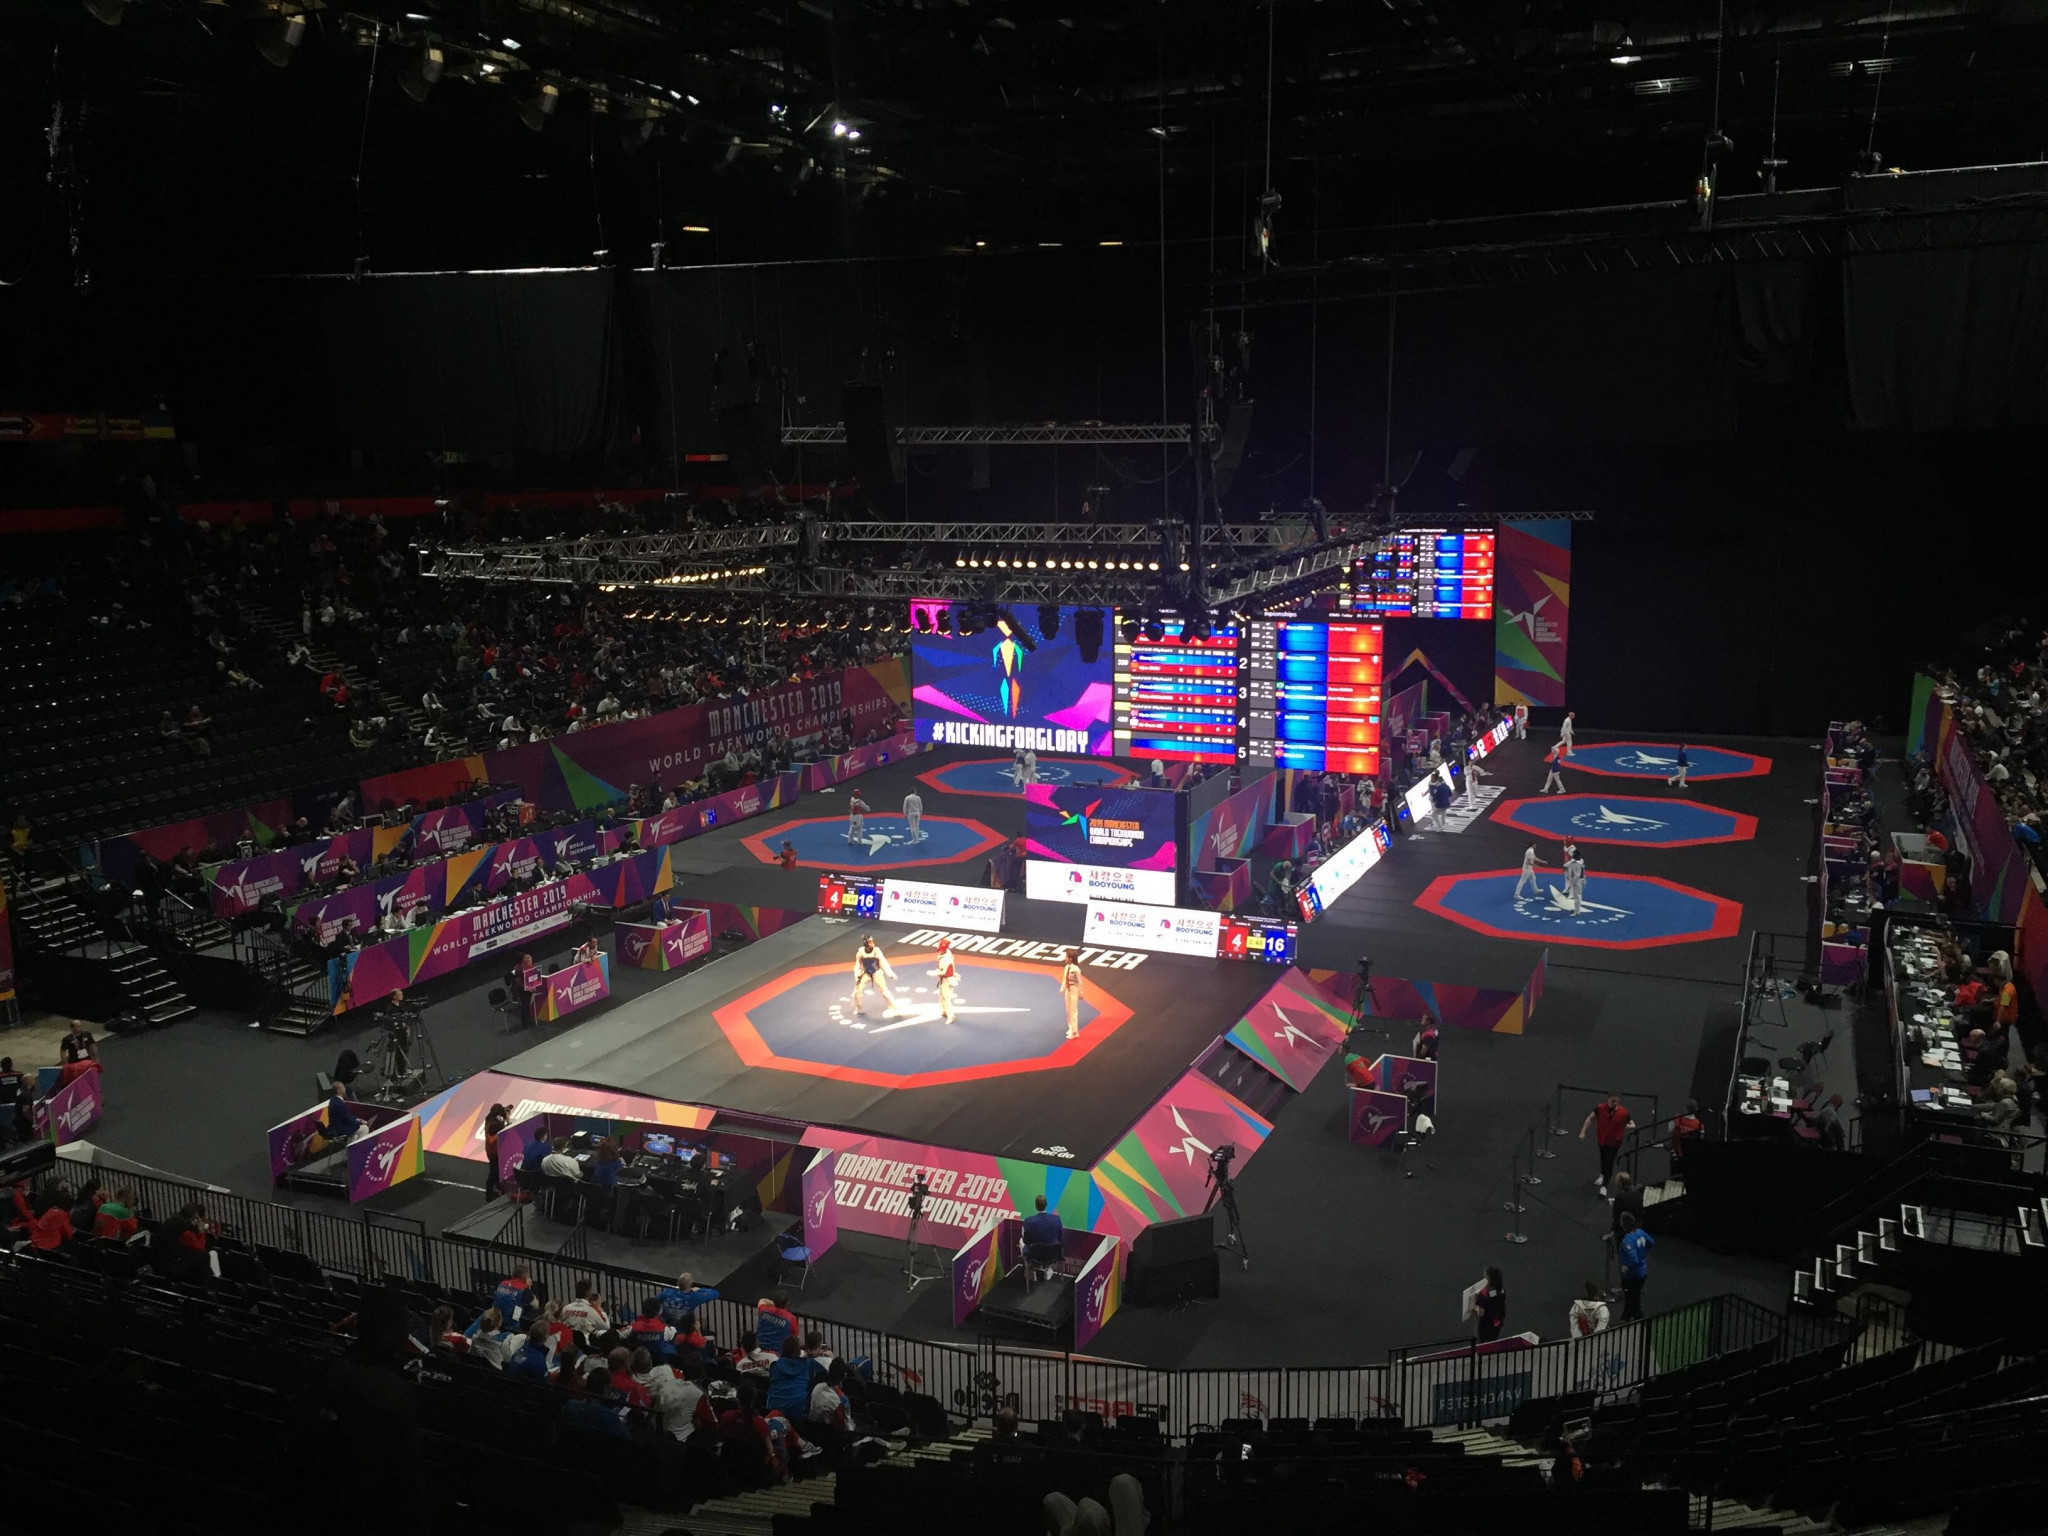 World Taekwondo Championships: Third day of action